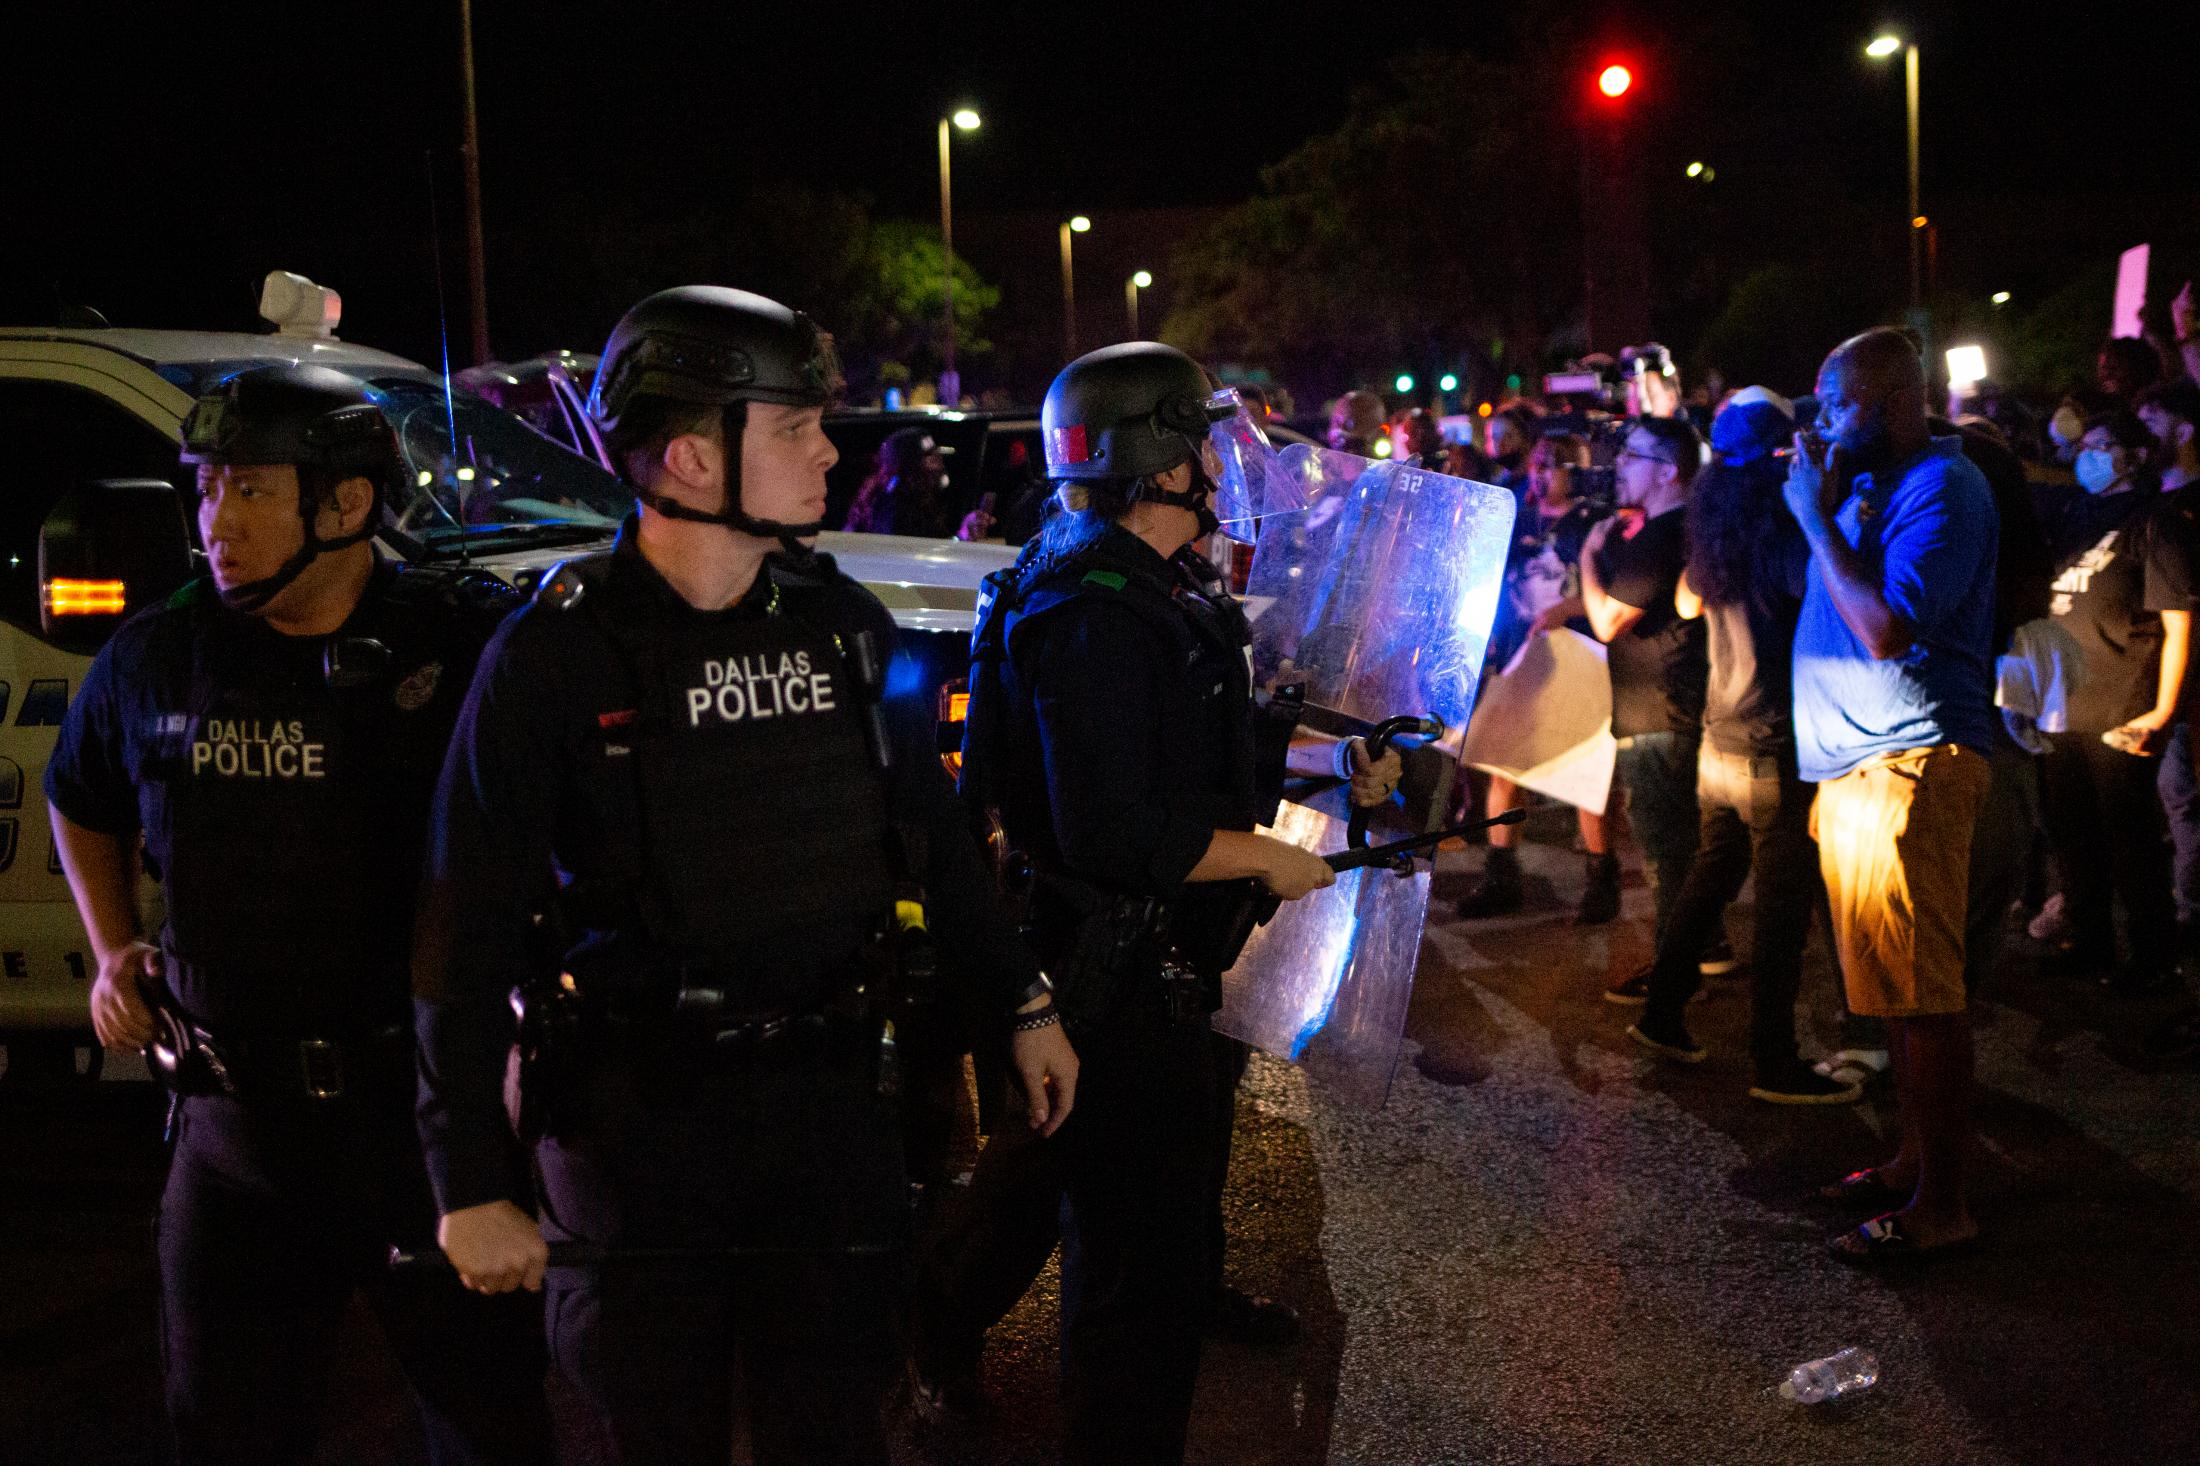 """Police reacted to the march of protestors with body shields and """"non-lethal"""" weapons. Protestors start to deface Police Property in response."""